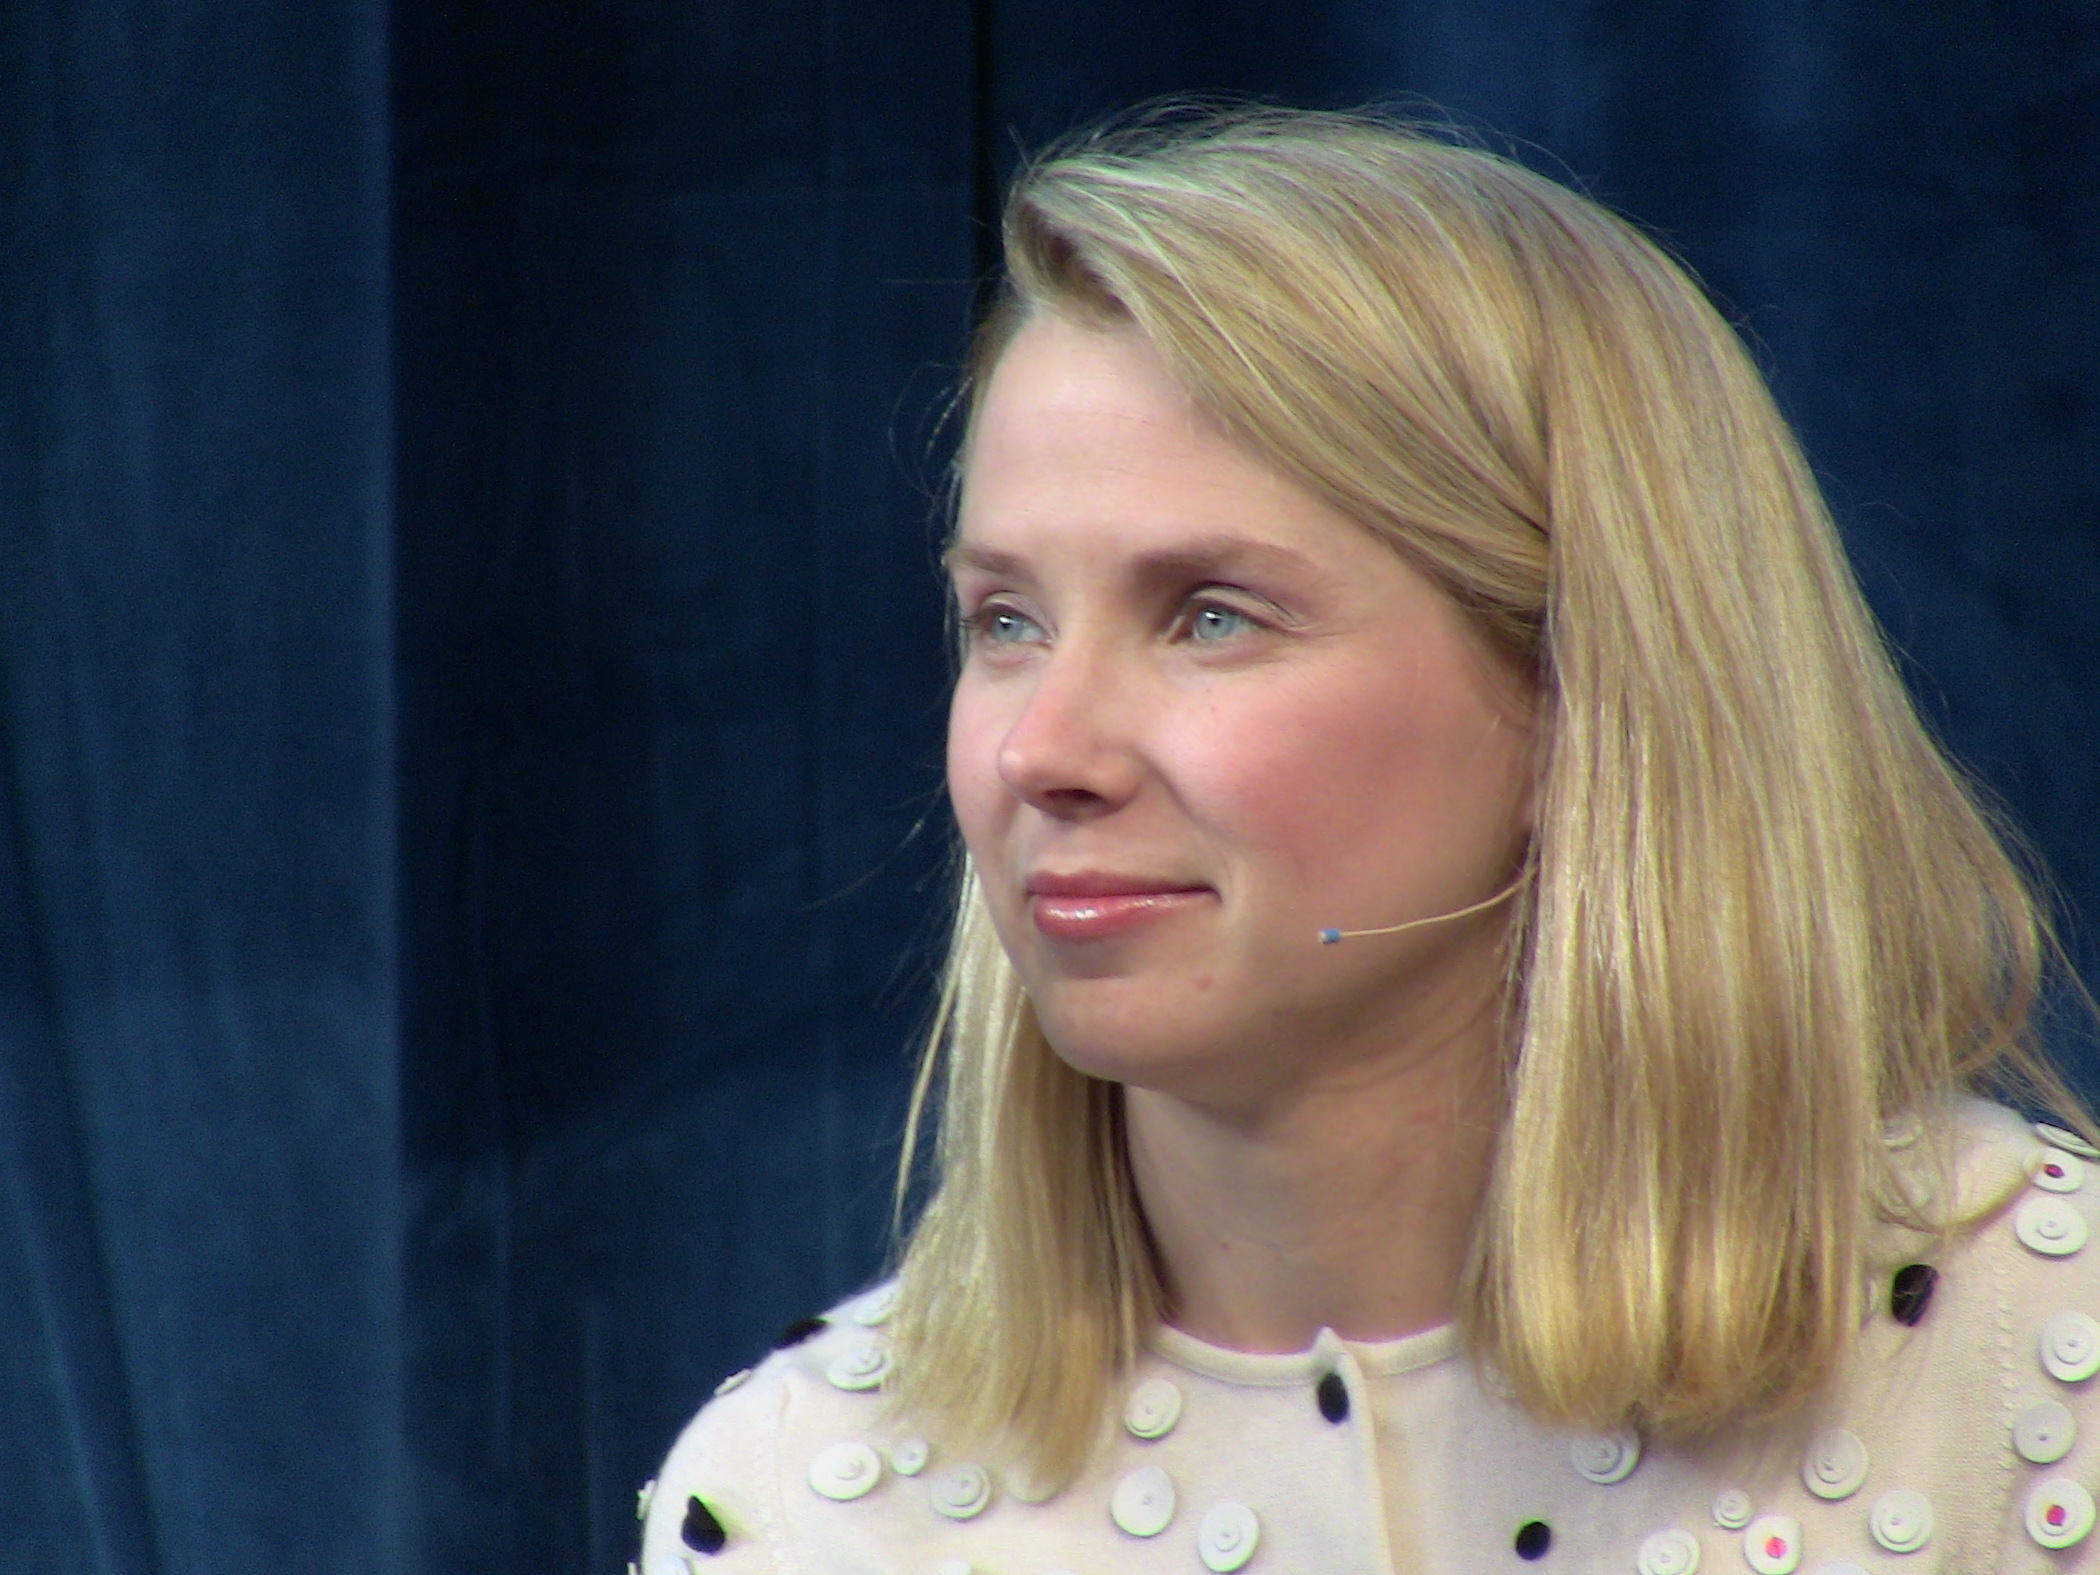 Yahoo CEO Does What To Job Applicants?